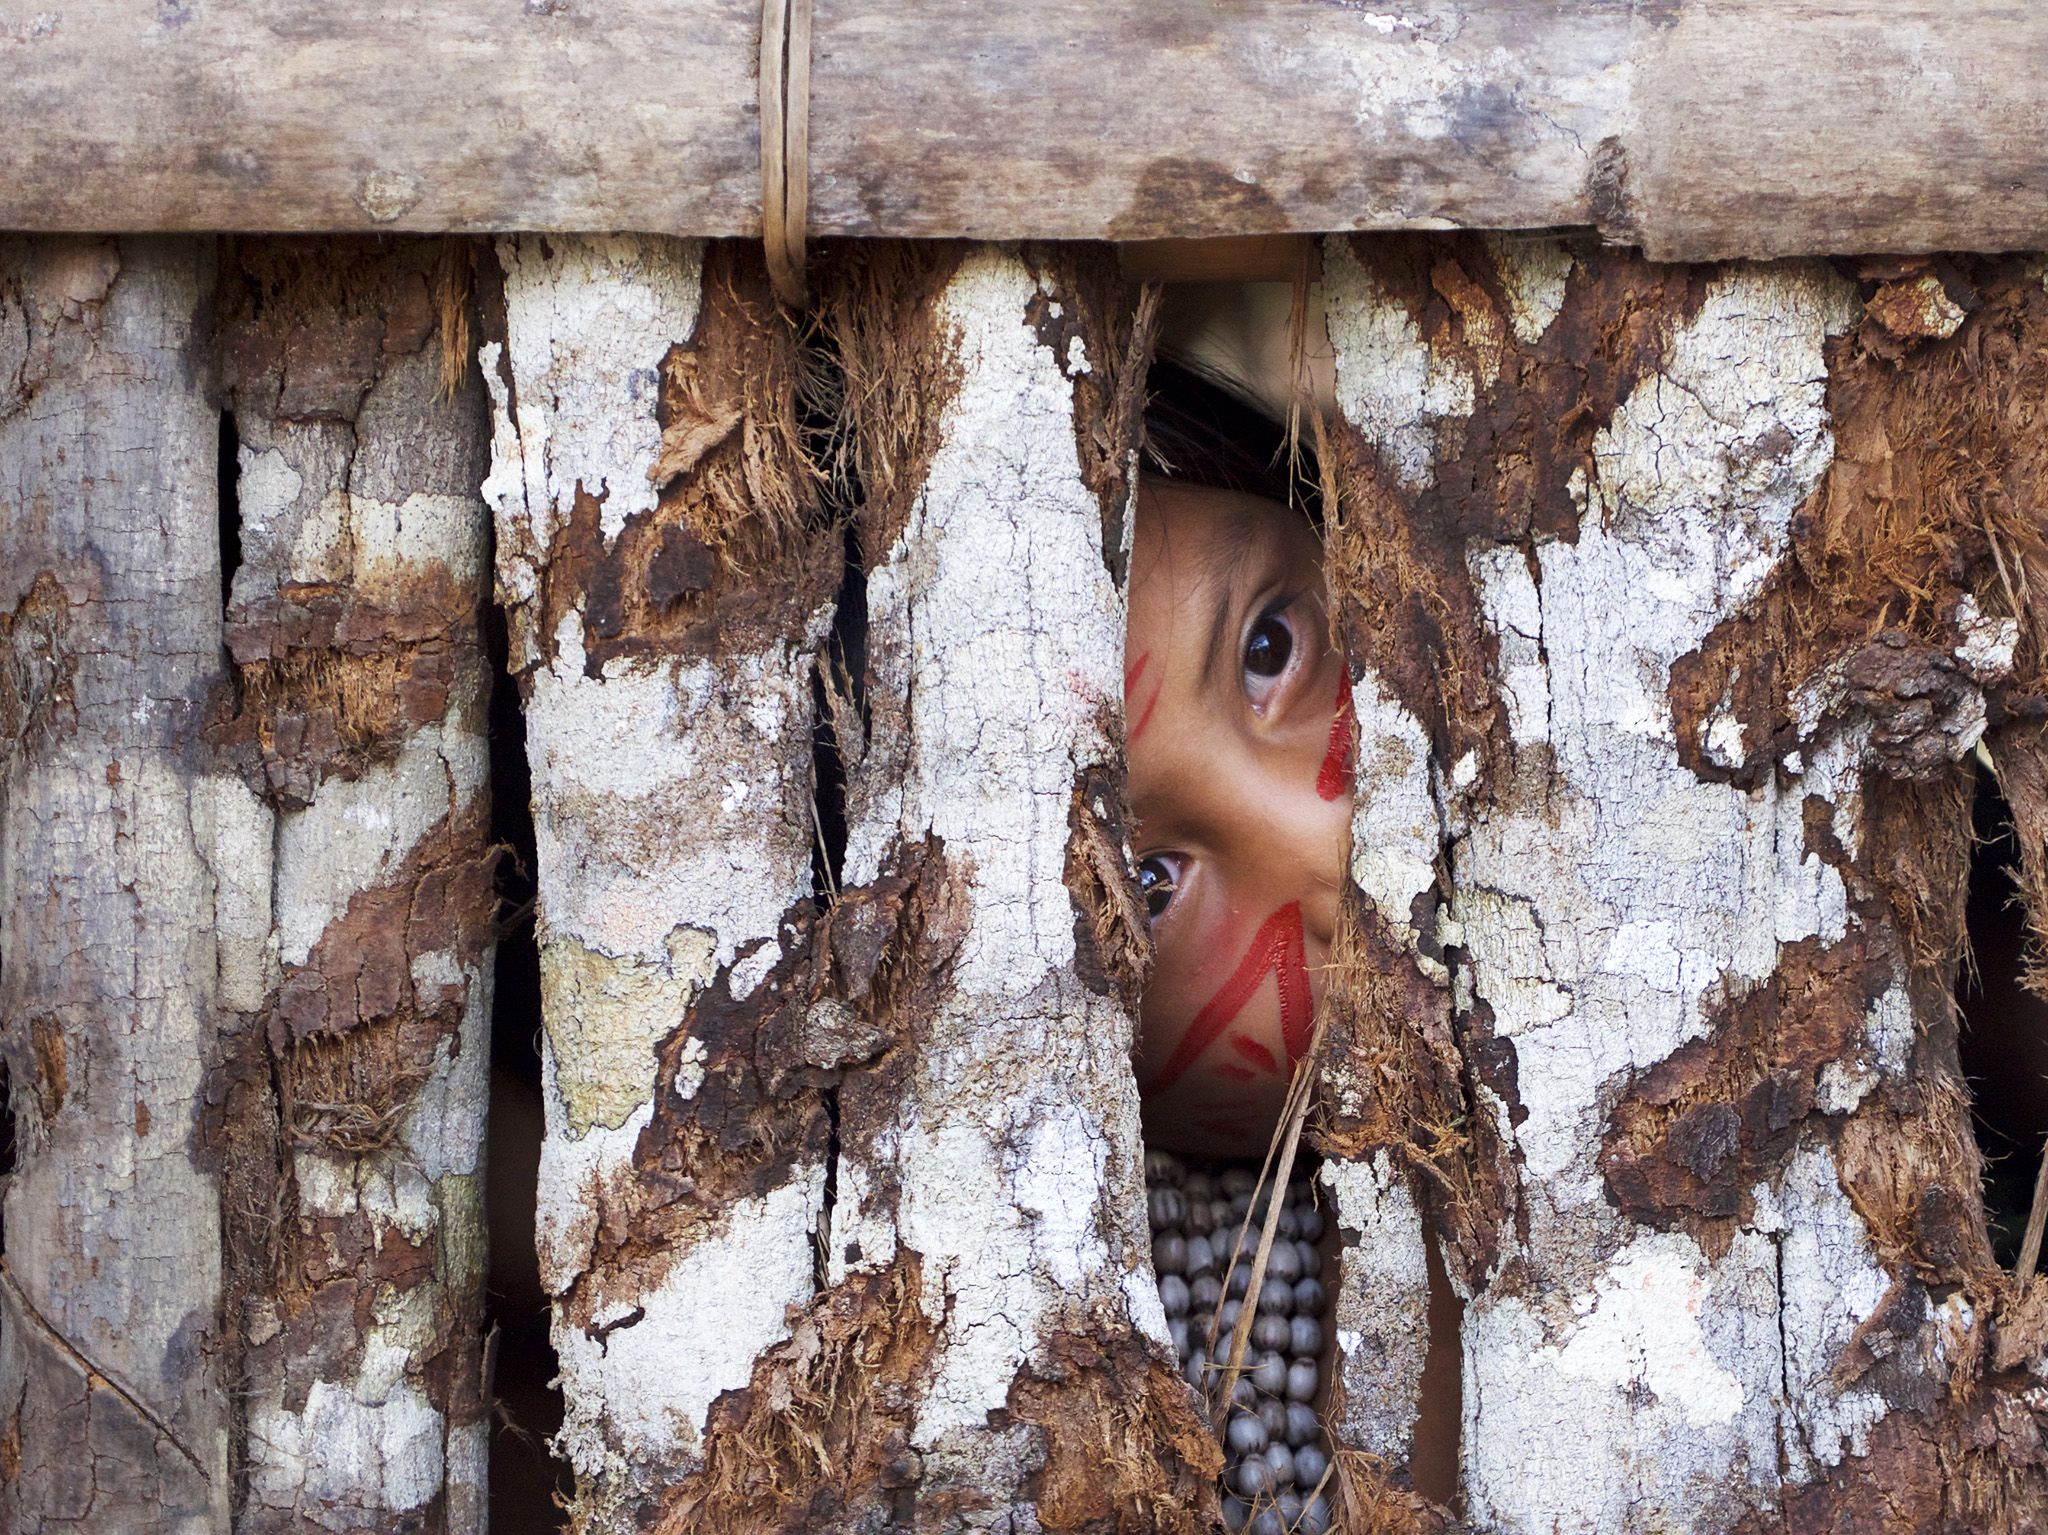 Amazon, Brazil:  A young child in an Amazonian village.  This image is from One Strange Rock. [Photo of the day - March 2018]